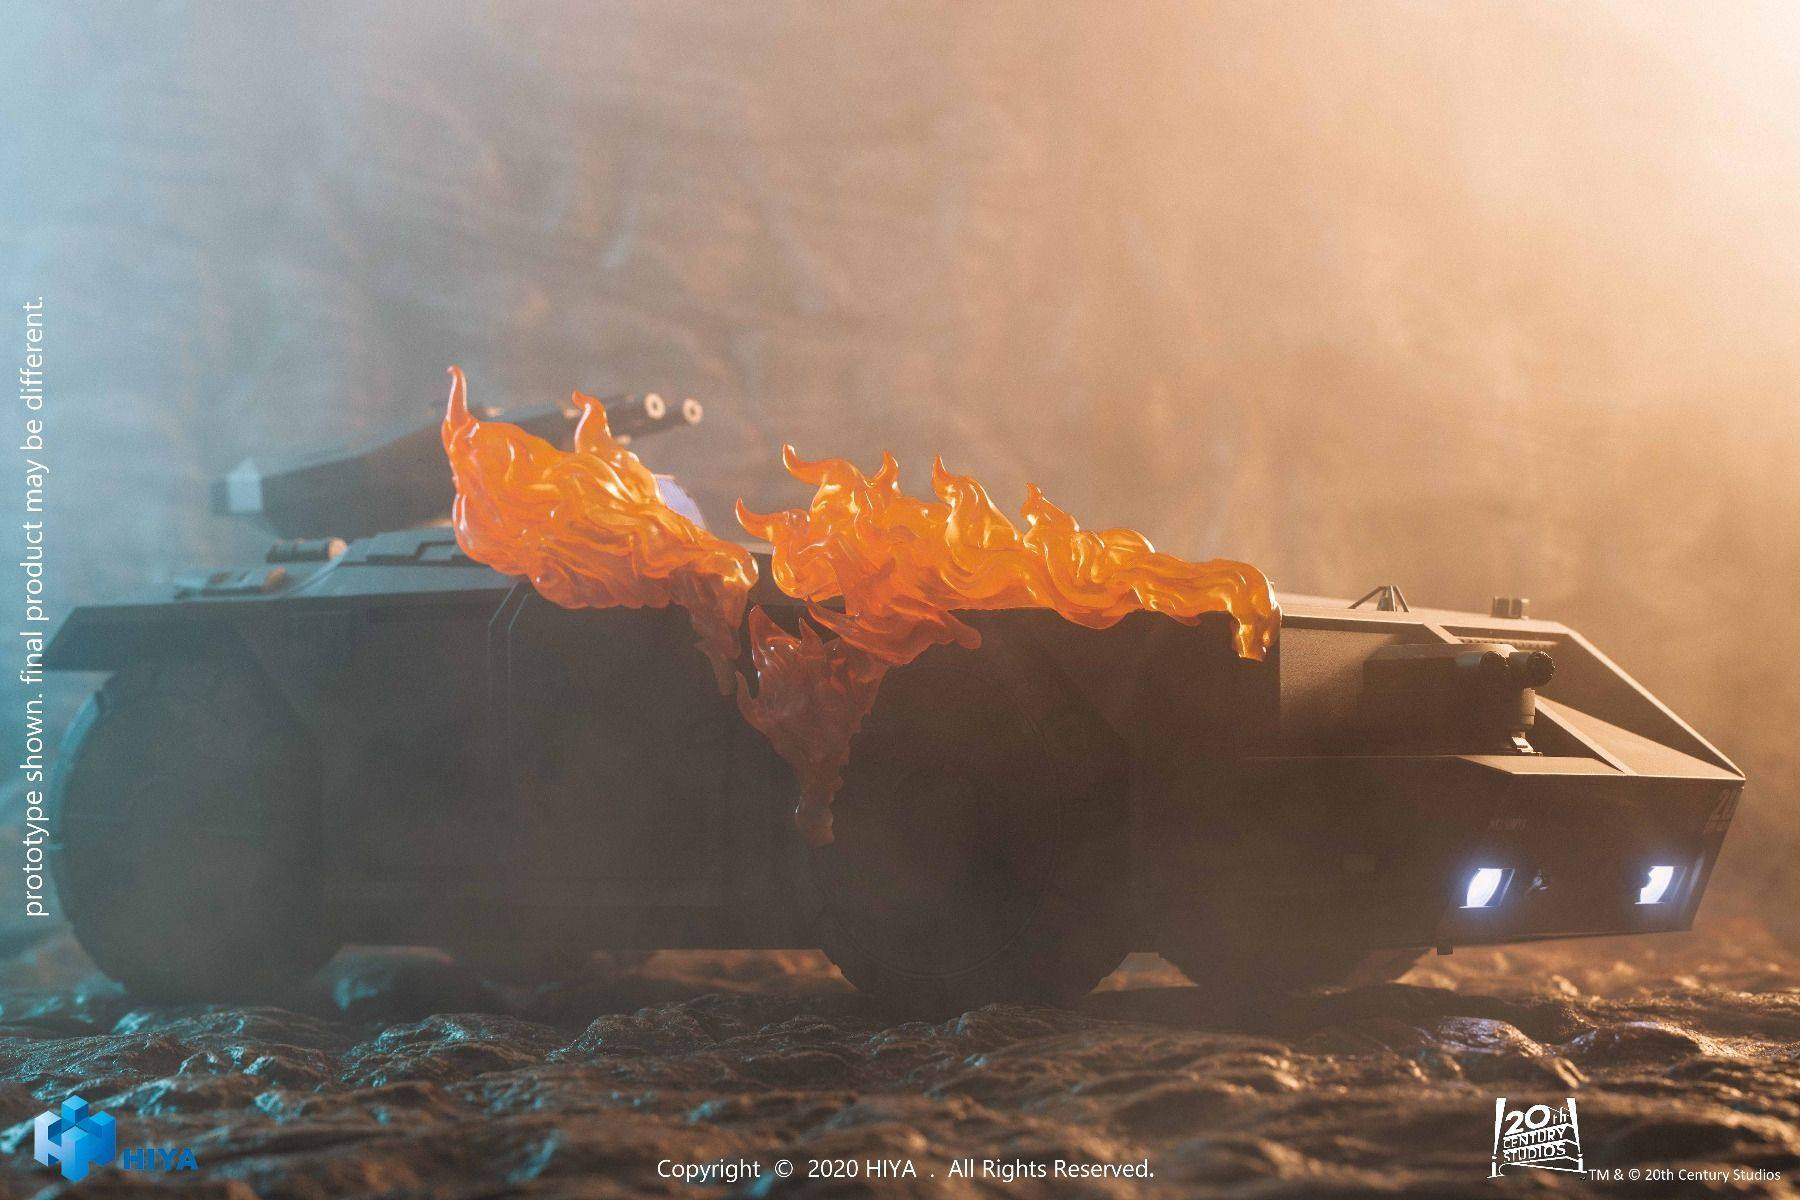 ALIENS: Burning Armored Personnel Carrier (1:18 Scale)<BR>PRE-ORDER: ETA Q3 2021